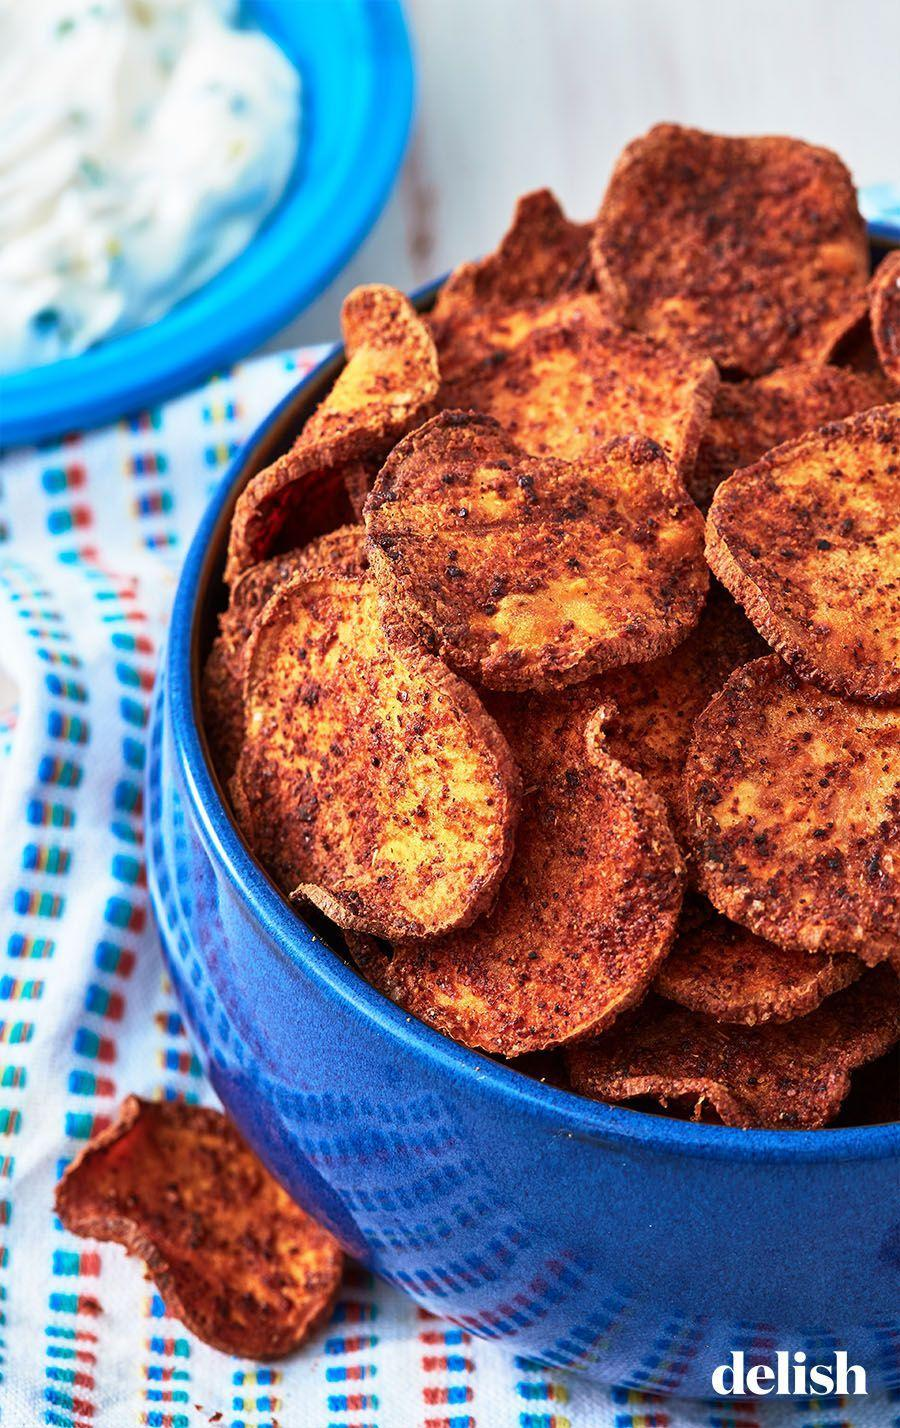 "<p>Homemade chips with a fall twist.</p><p>Get the recipe from <a href=""https://www.delish.com/cooking/recipe-ideas/recipes/a49369/sweet-potato-chips-recipe/"" rel=""nofollow noopener"" target=""_blank"" data-ylk=""slk:Delish"" class=""link rapid-noclick-resp"">Delish</a>.</p>"